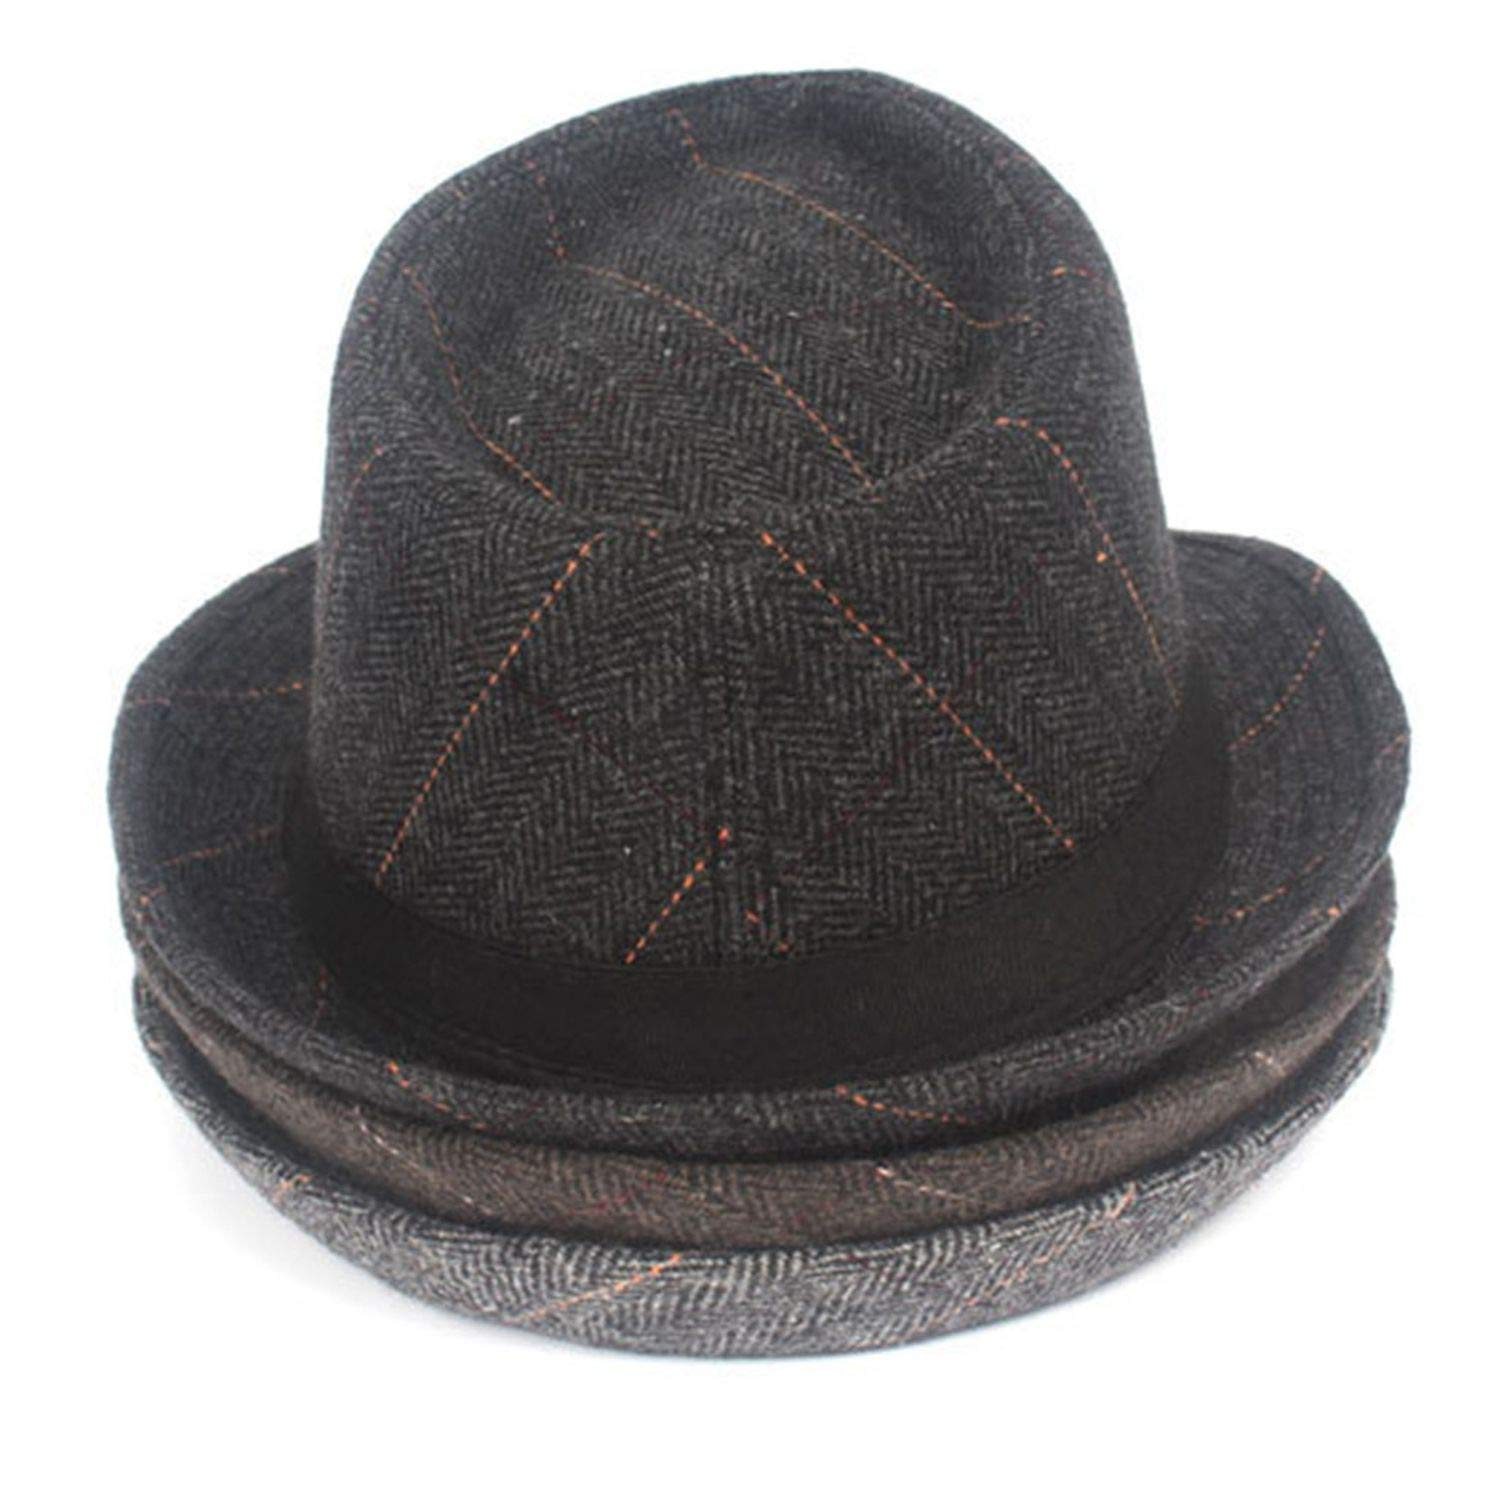 Fedora Hats Summer Casquette Black Grey Tweed Flat Cap Mens Gatsby Hat Snapback Gorra Hombre at Amazon Mens Clothing store: